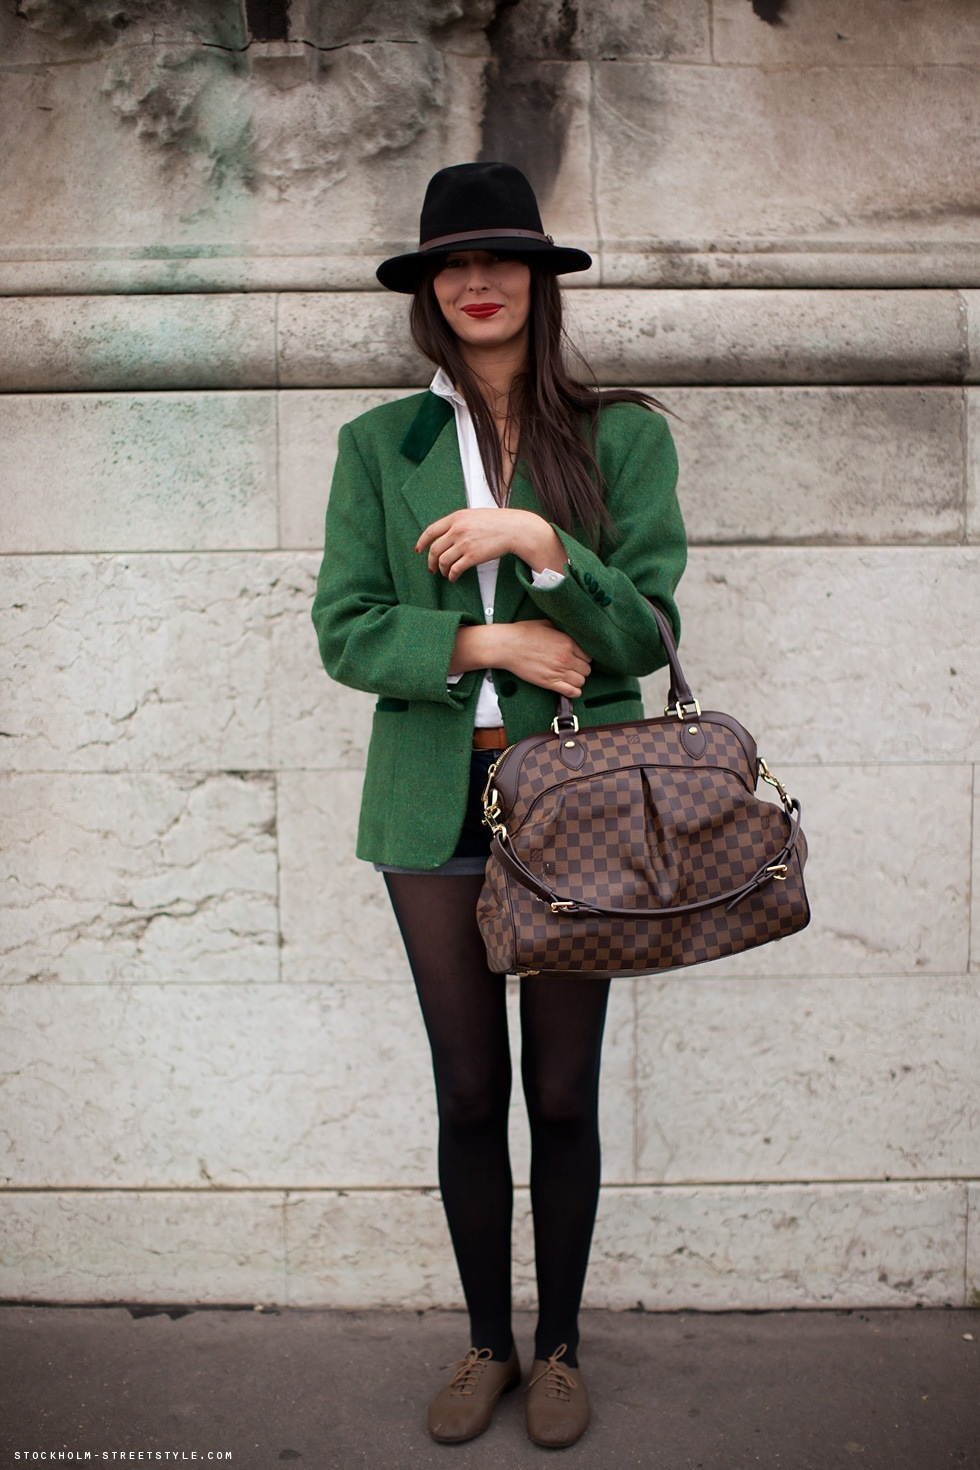 bag, blazer, brunette, fashion, girl